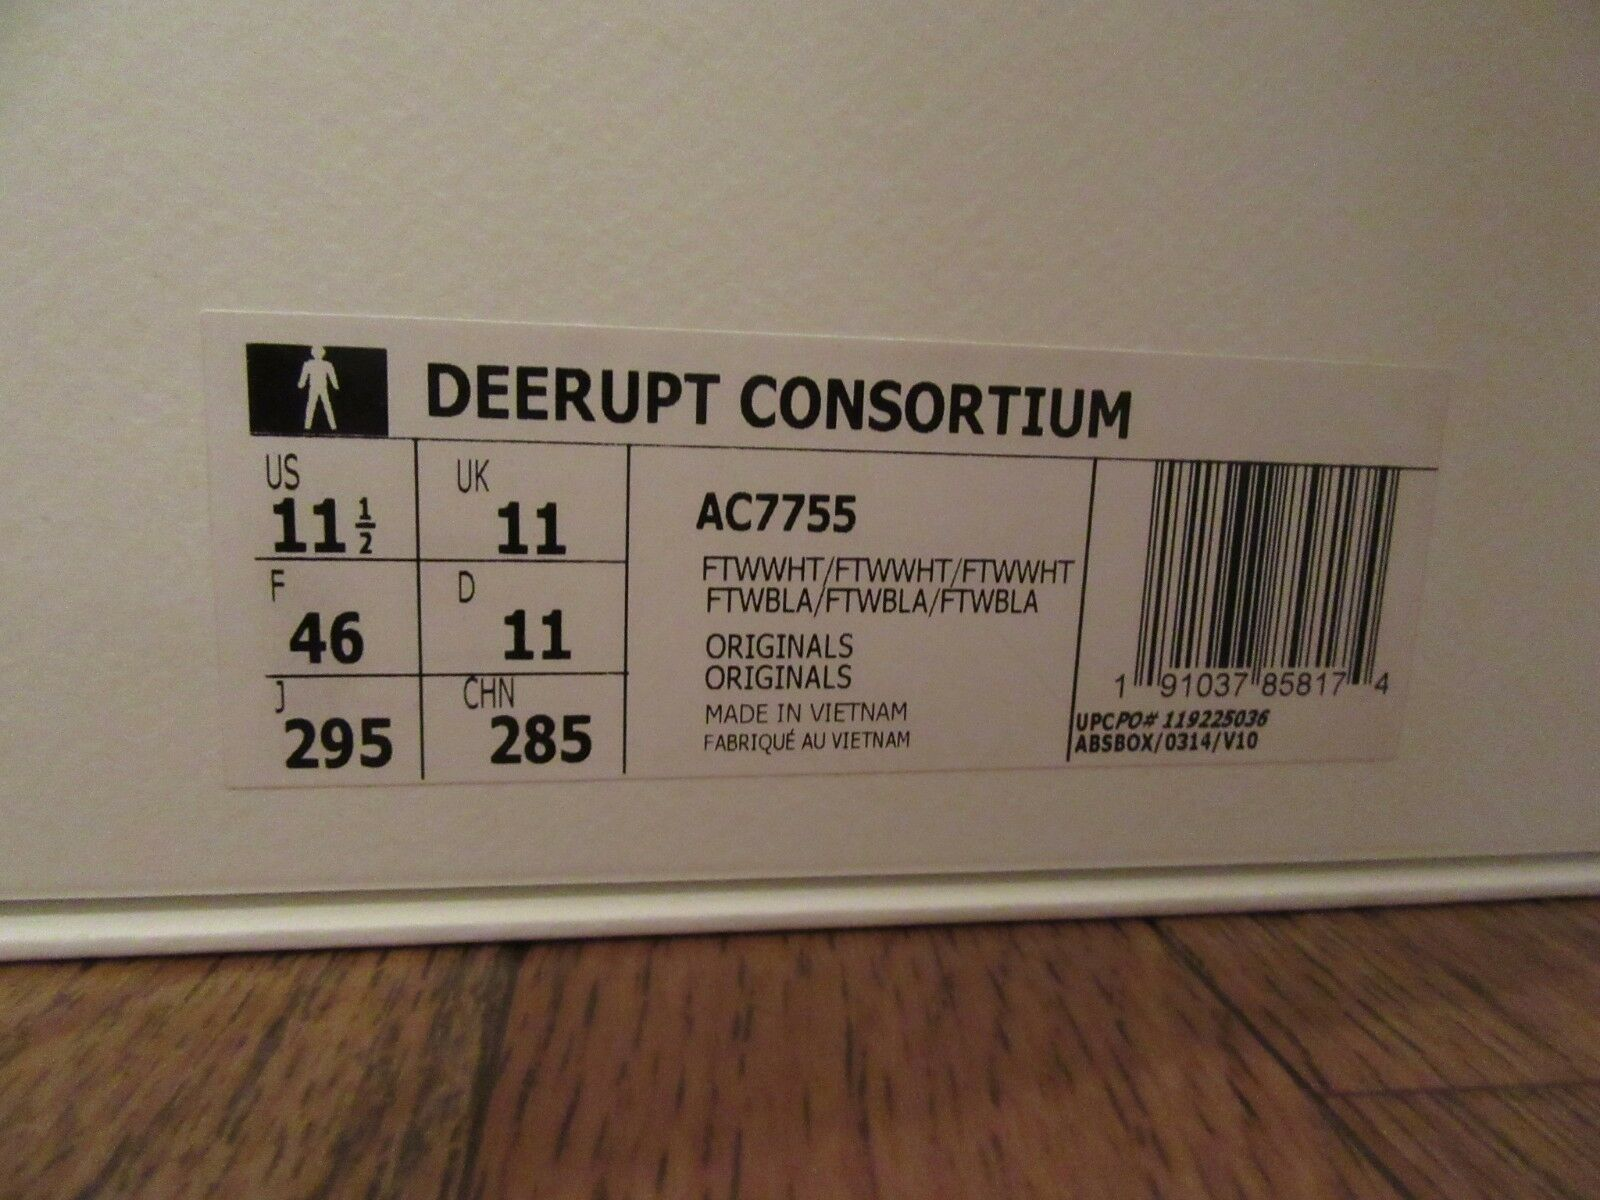 ADIDAS DEERUPT CONSORTIUM Size 11.5 White Grey AC7755 Brand New In Box NIB DS